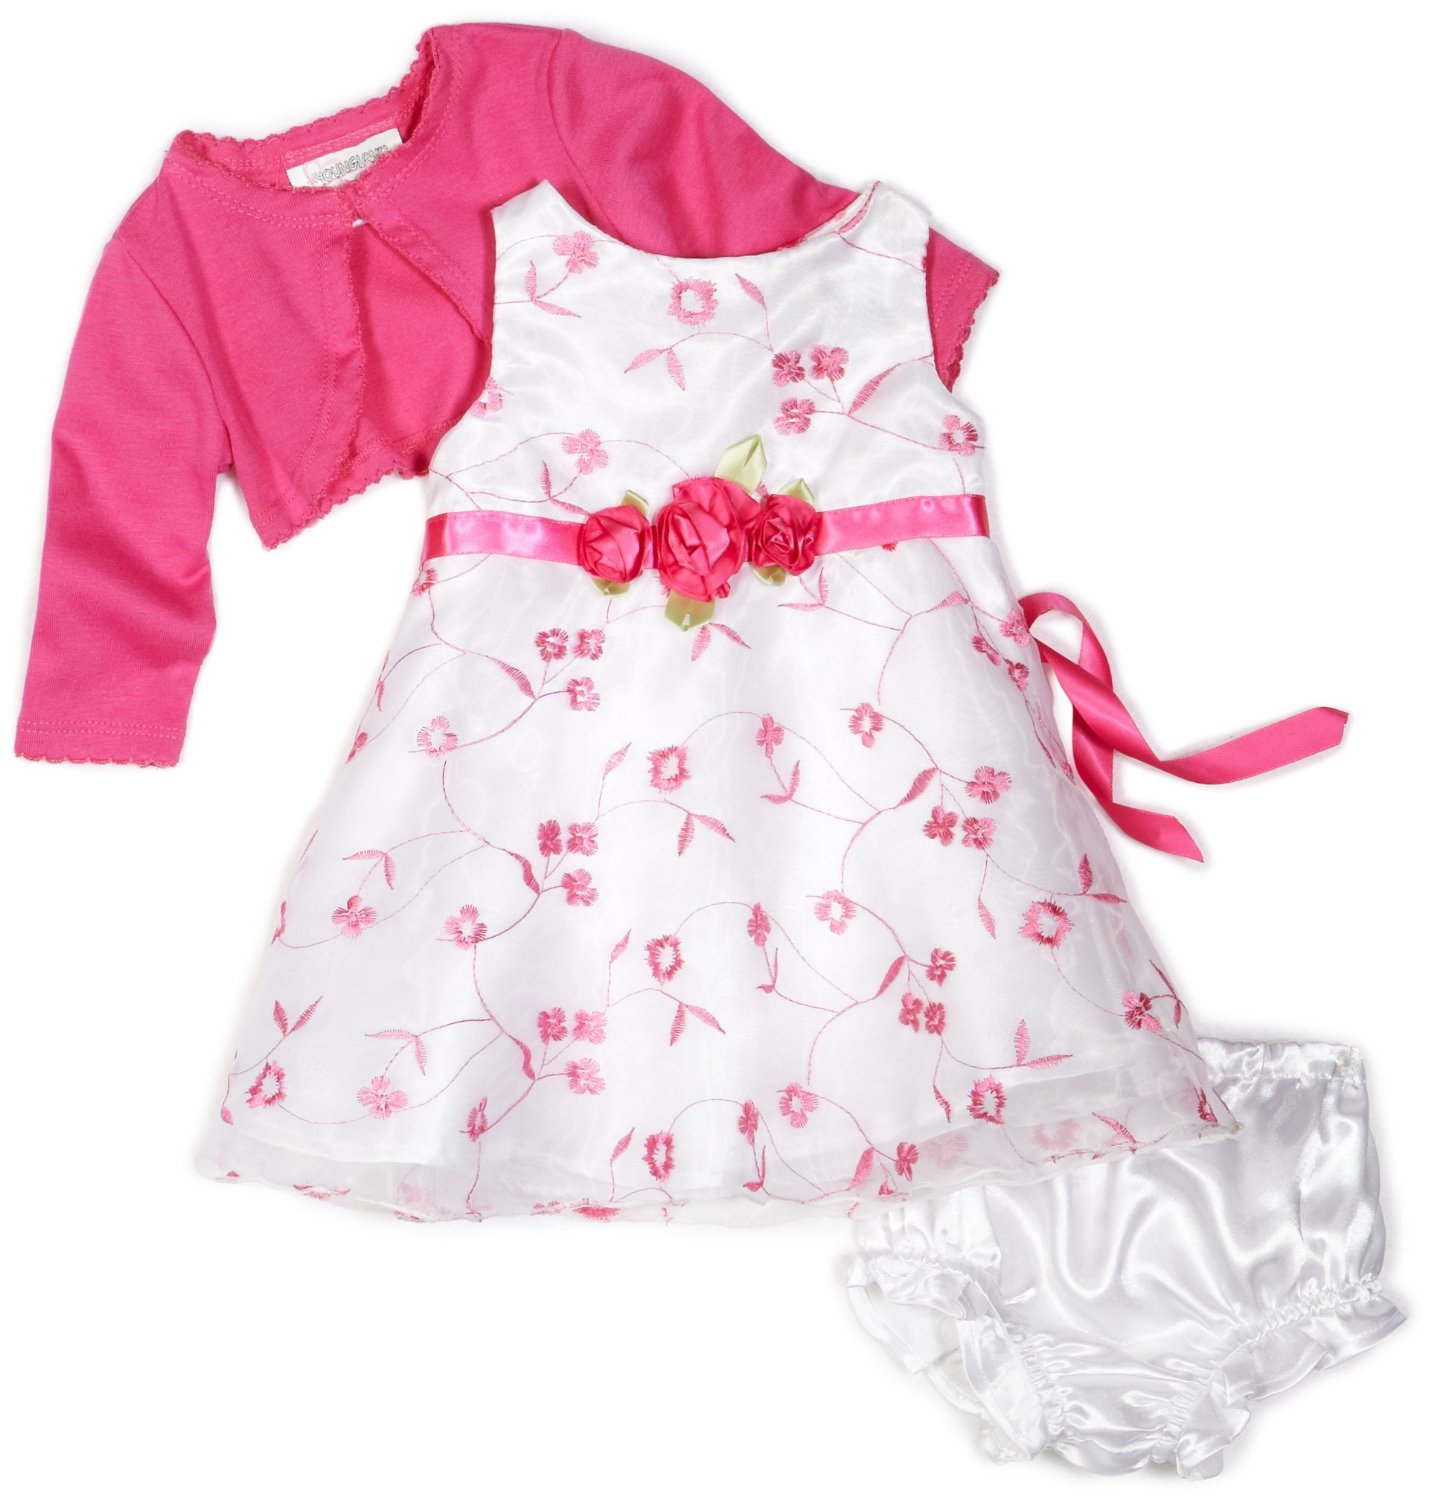 Baby Girl Clothes - Newborn